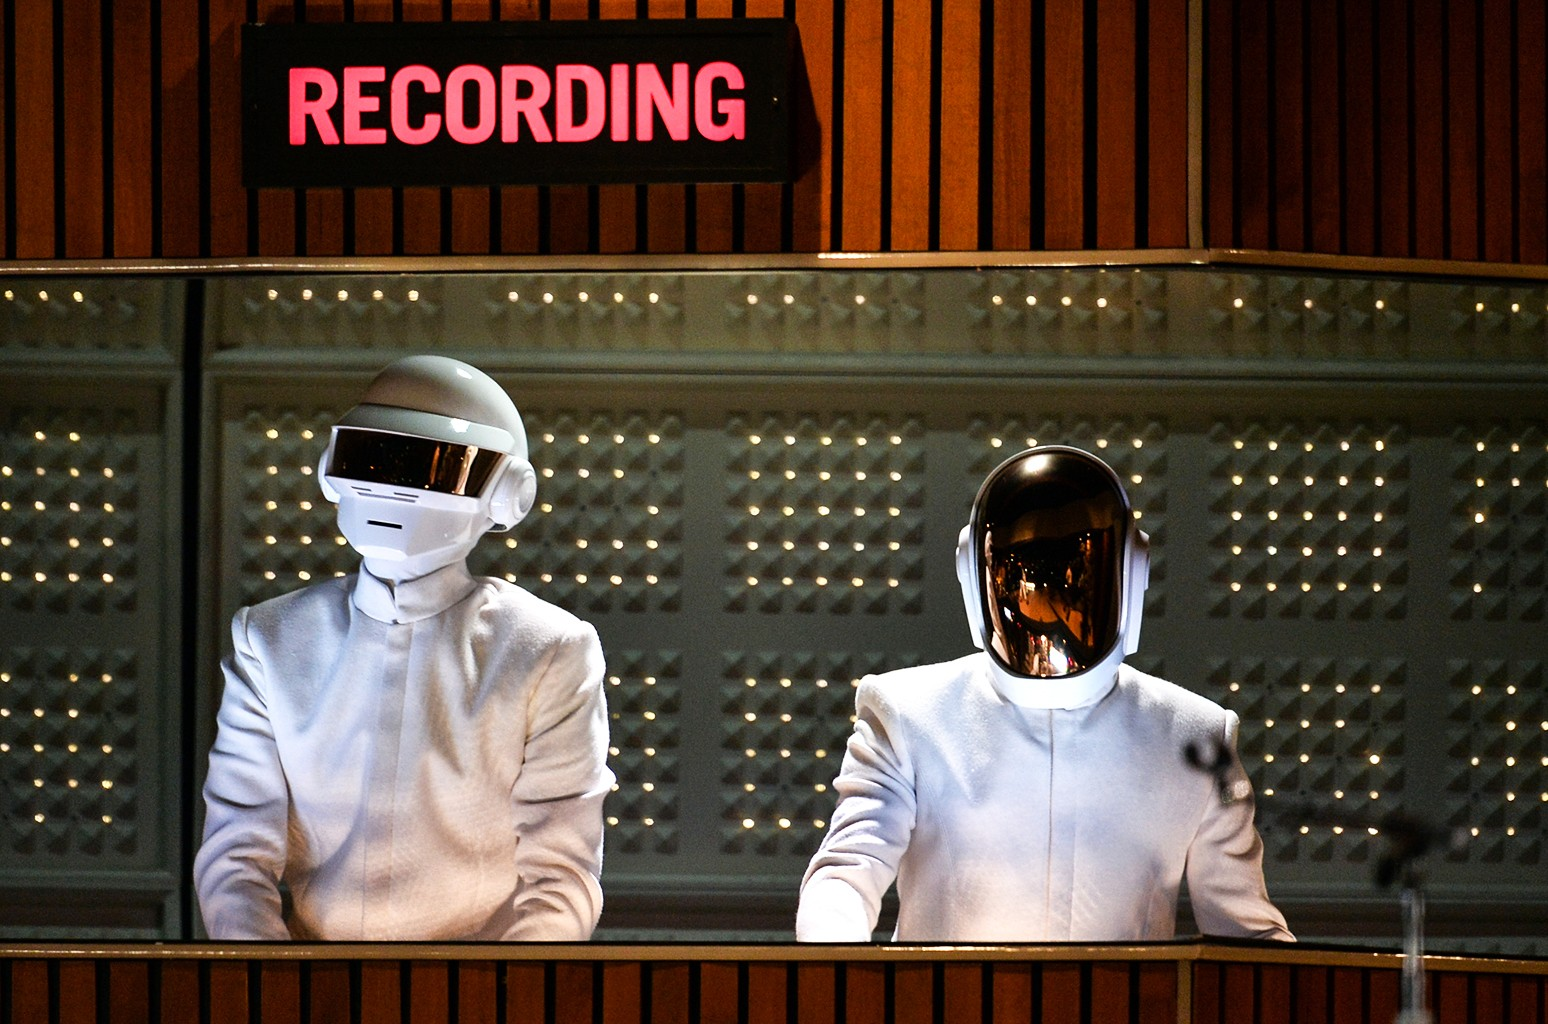 Daft Punk perform during the 56th Grammy Awards at Staples Center on Jan. 26, 2014 in Los Angeles.